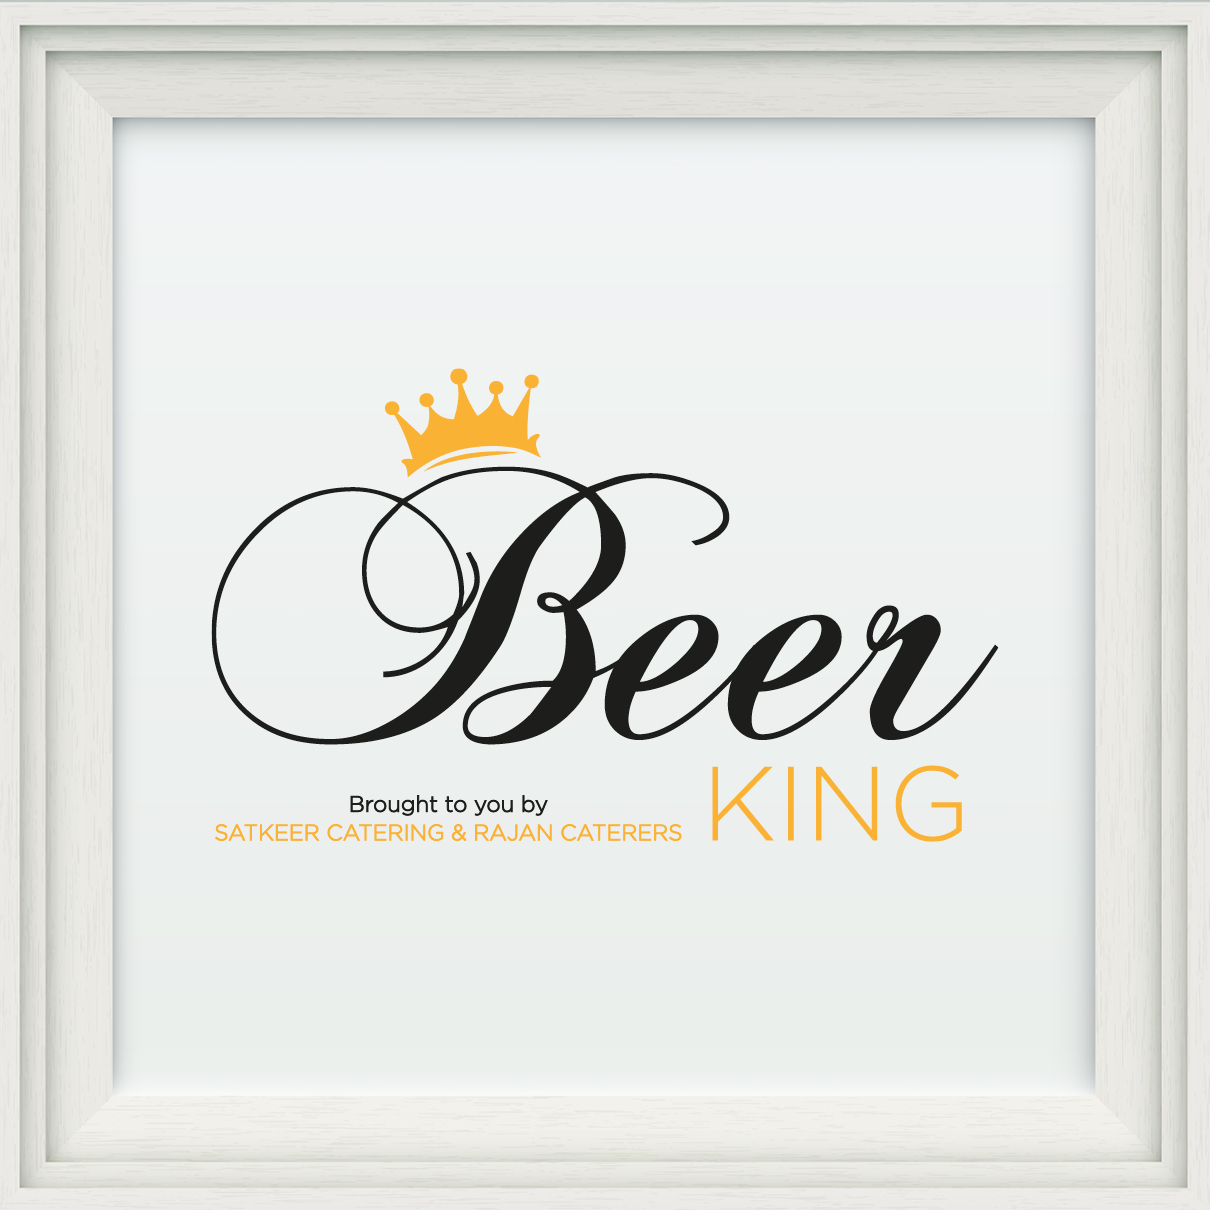 Beer King Logo